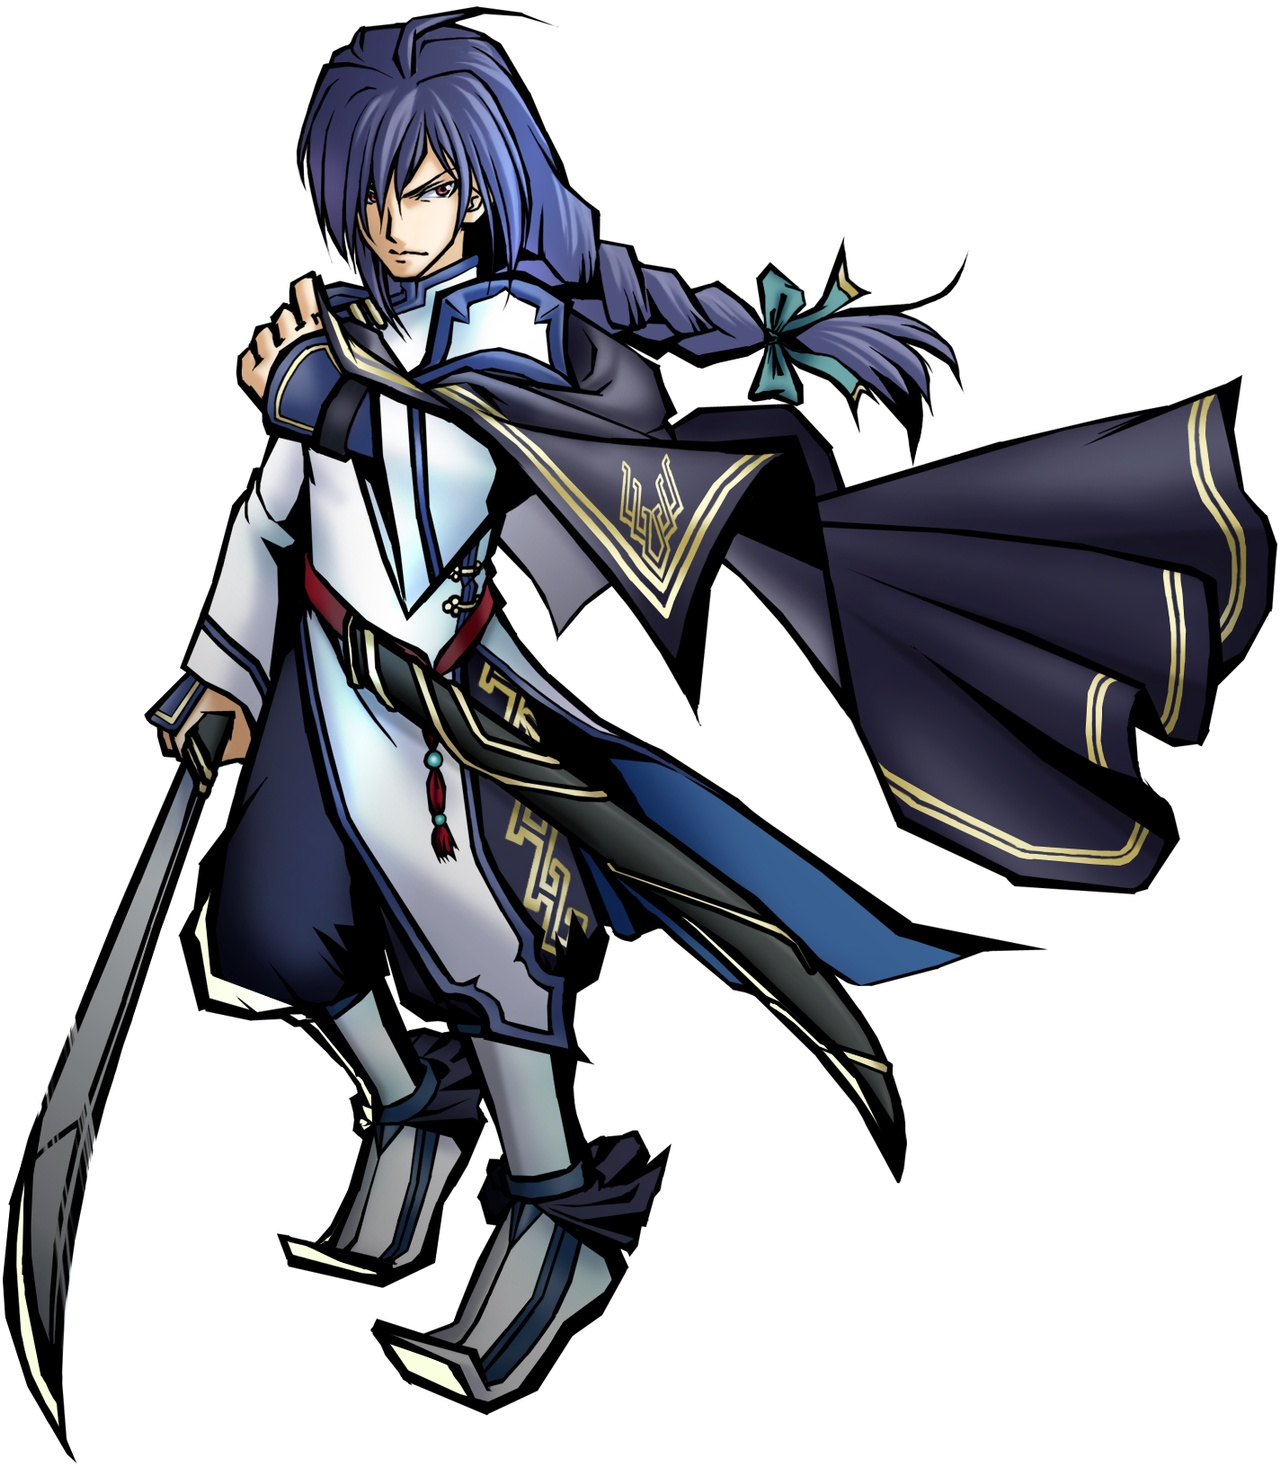 Four gods koei wiki fandom powered by wikia is my fate bound to this azure banner very well then let my blade cleave the path of fate biocorpaavc Choice Image